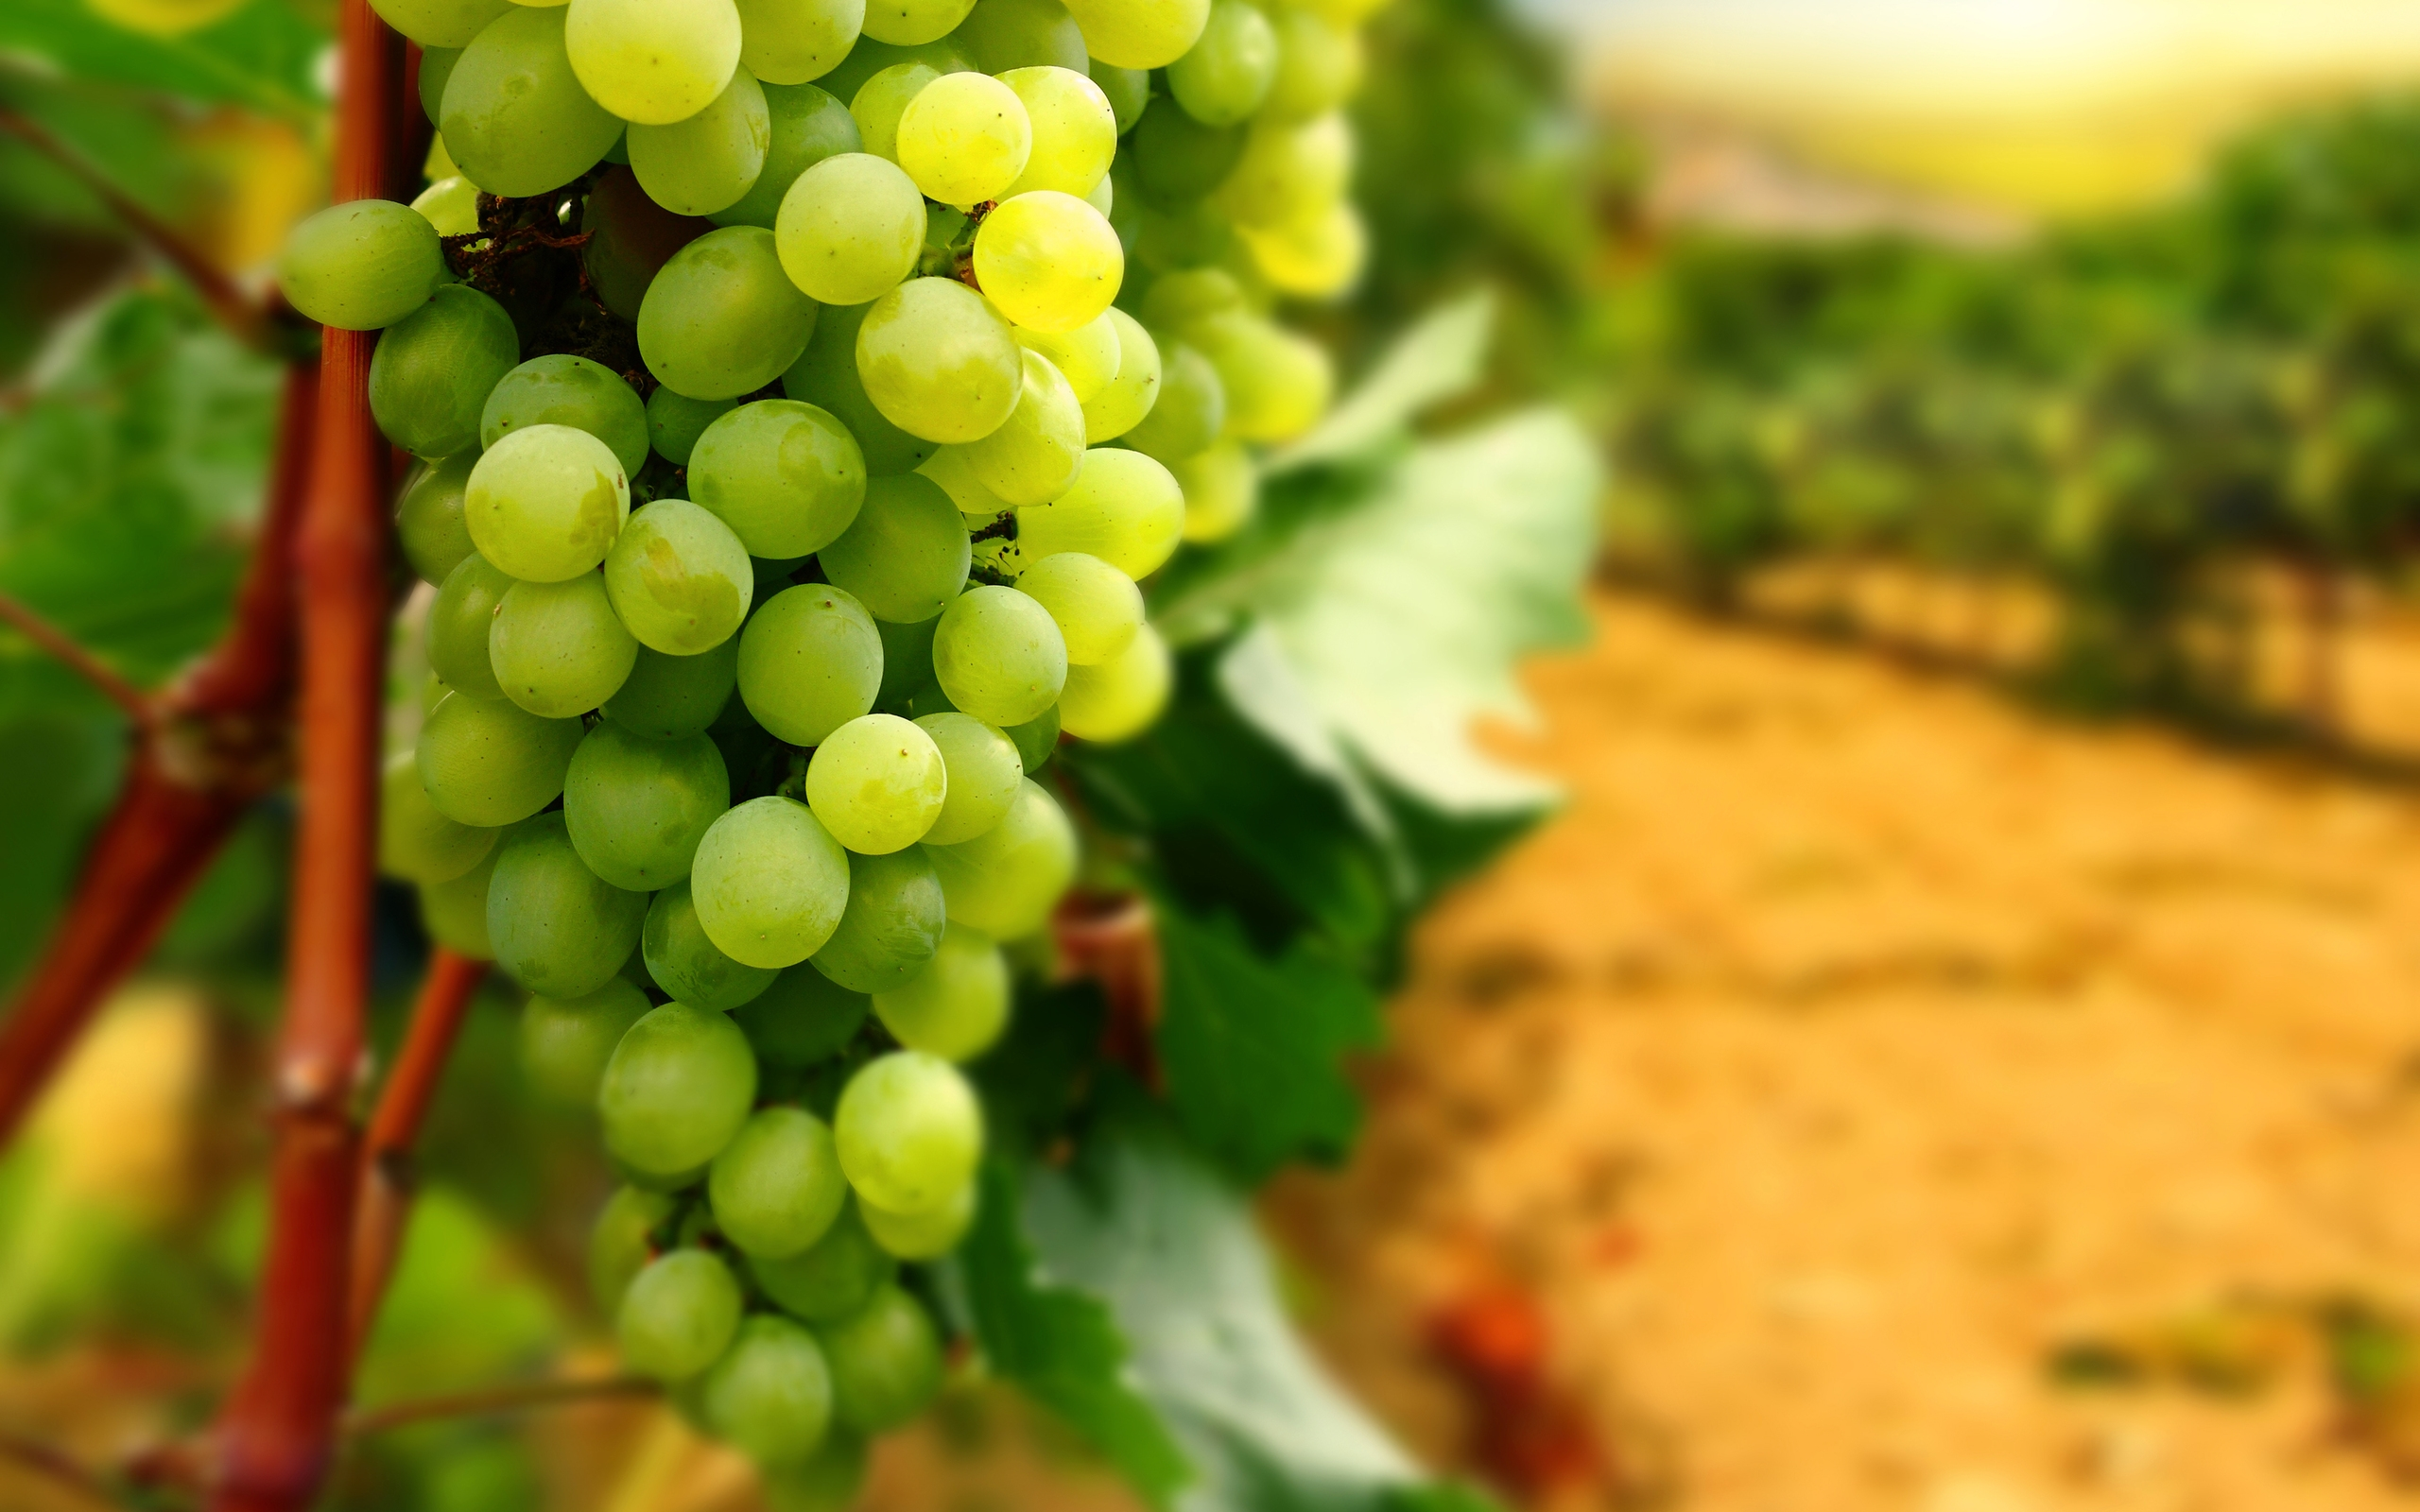 green grapes hd wallpaper